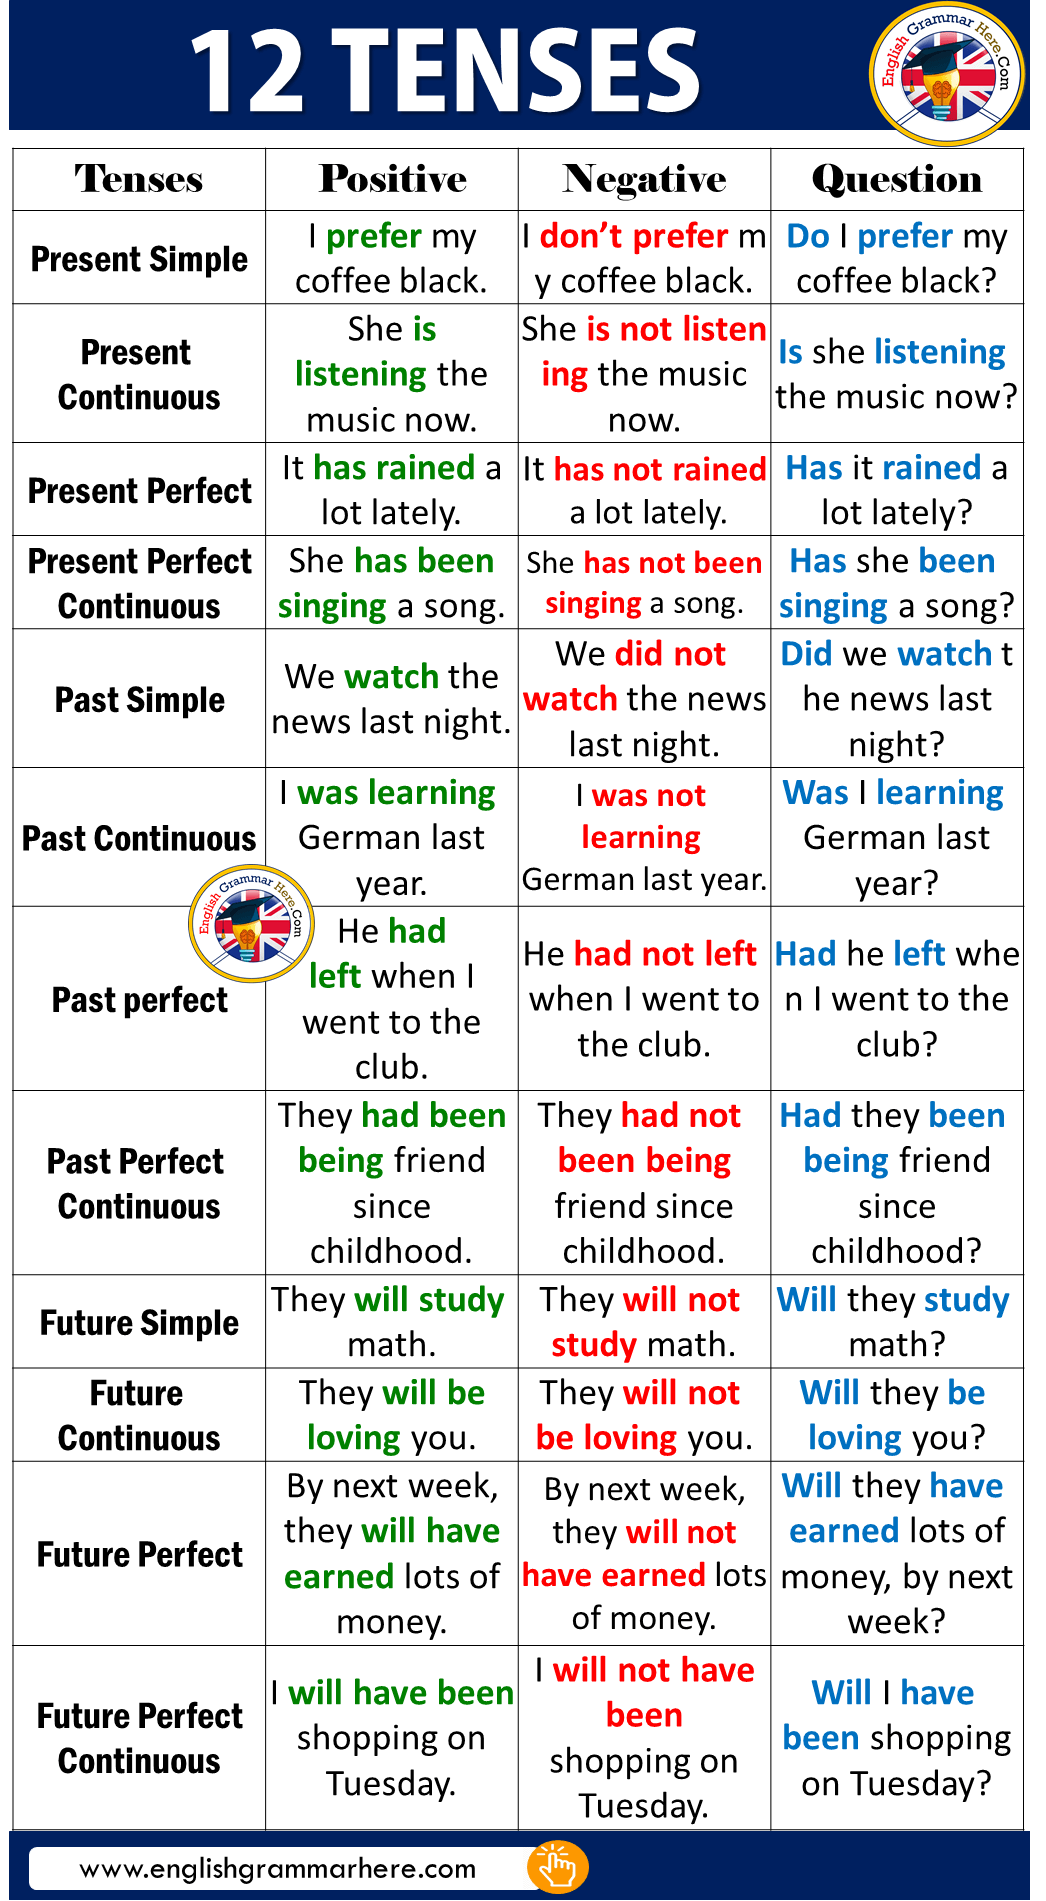 12 Tenses With Examples In English